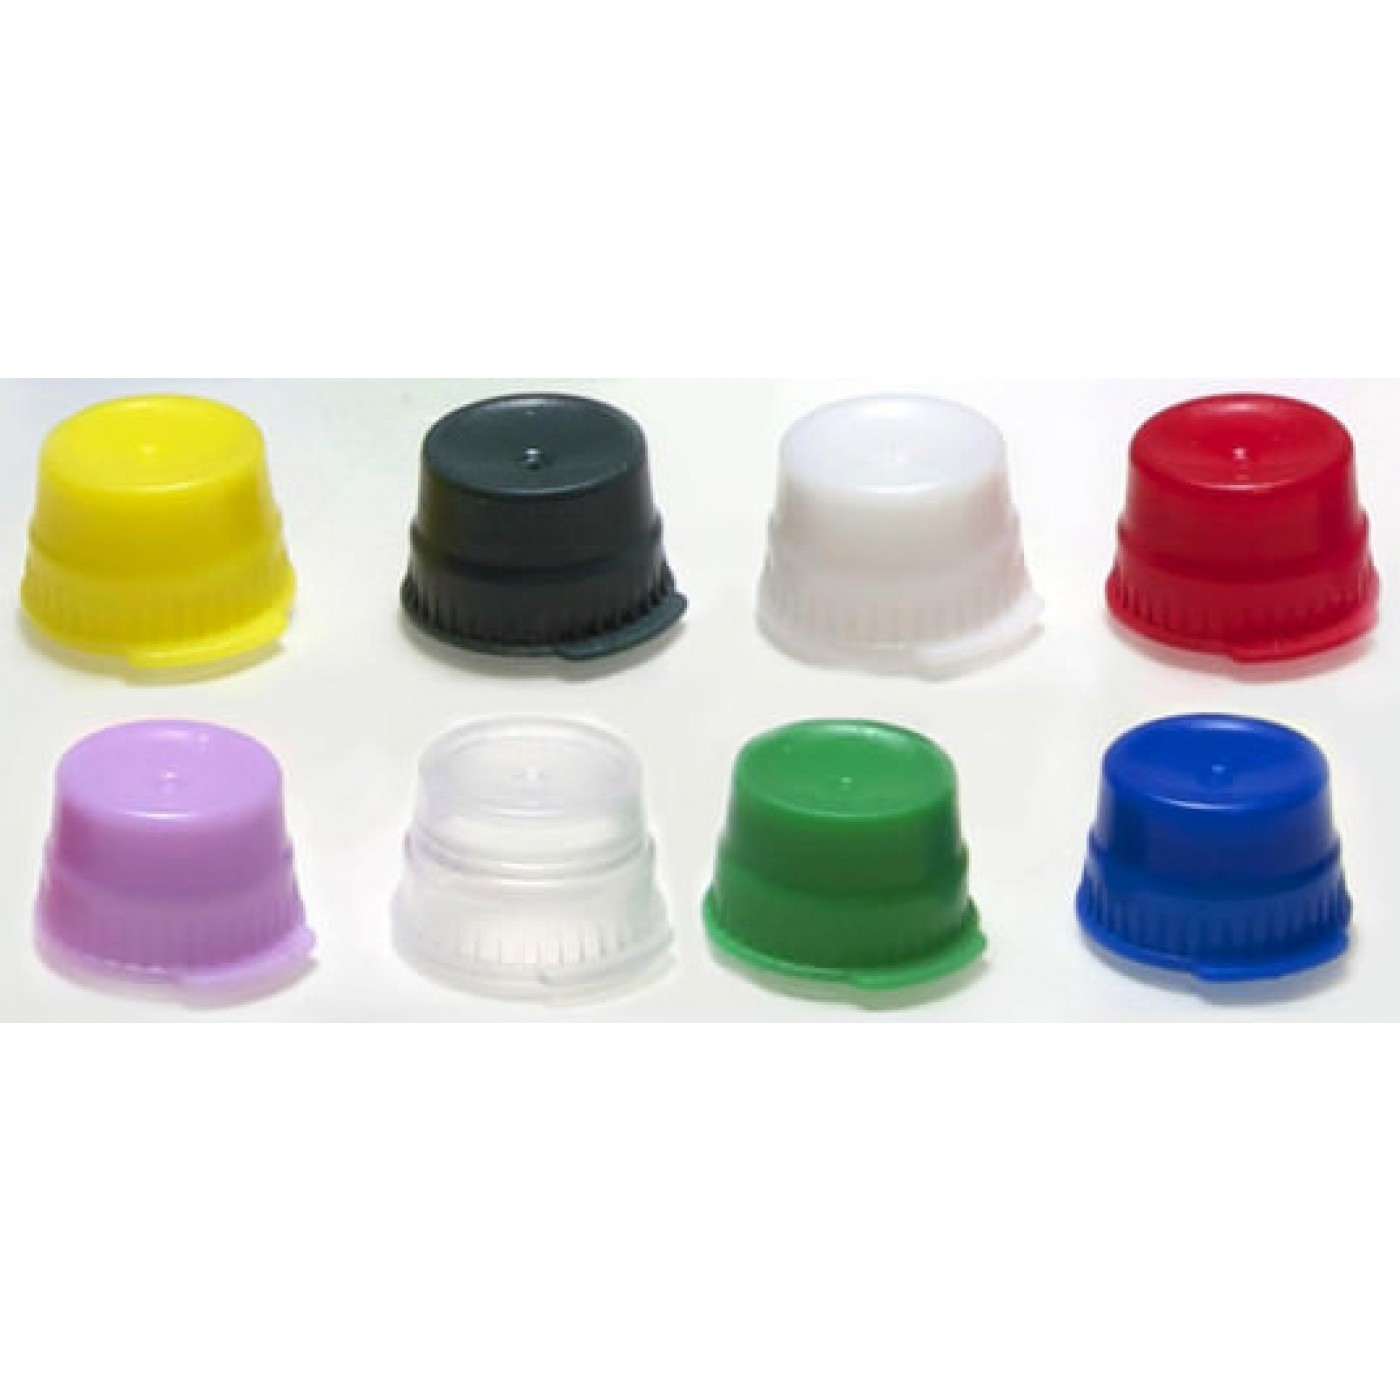 12mm Push fit test tube cap, green